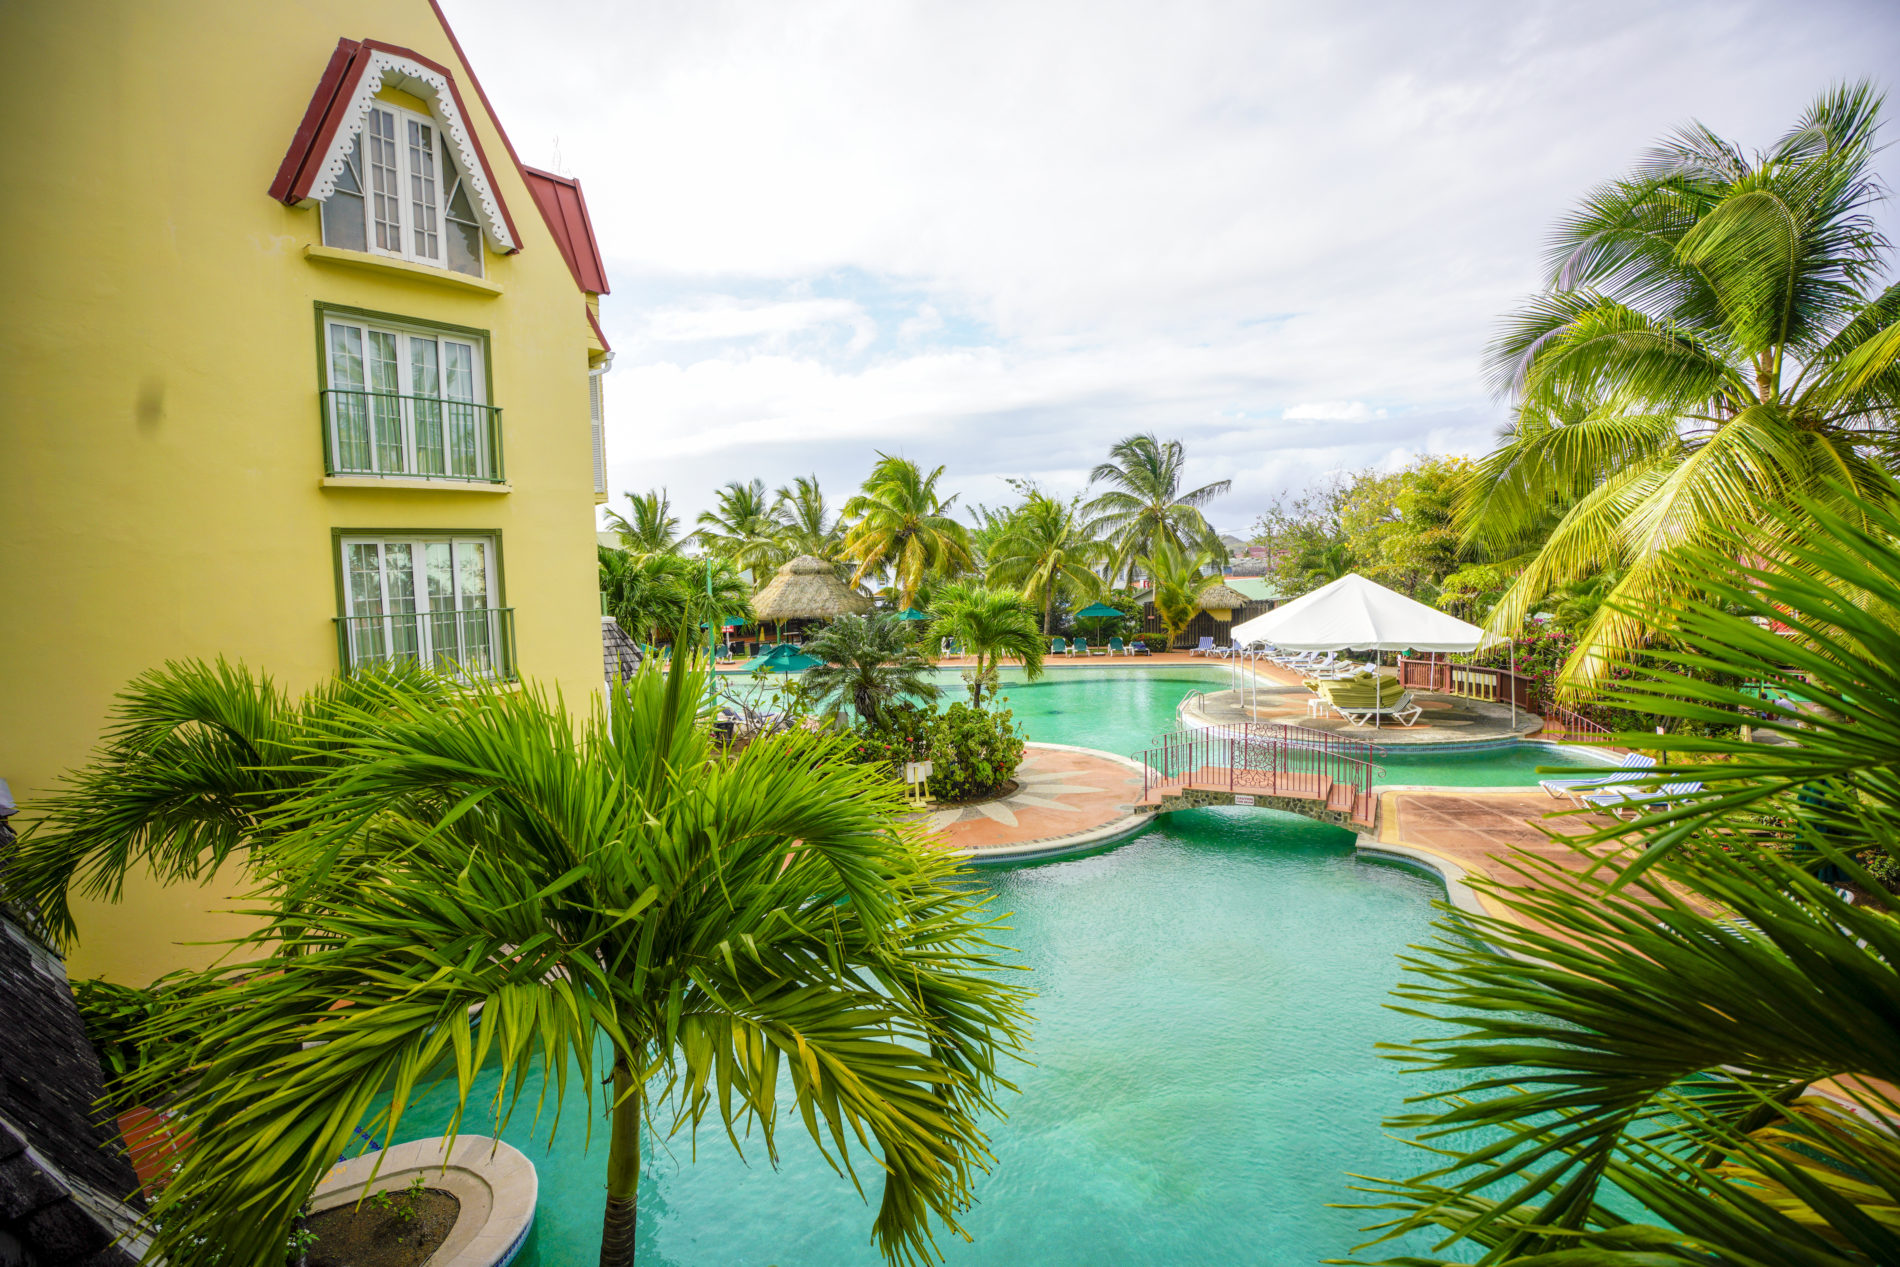 Coco Palm Resort, St Lucia